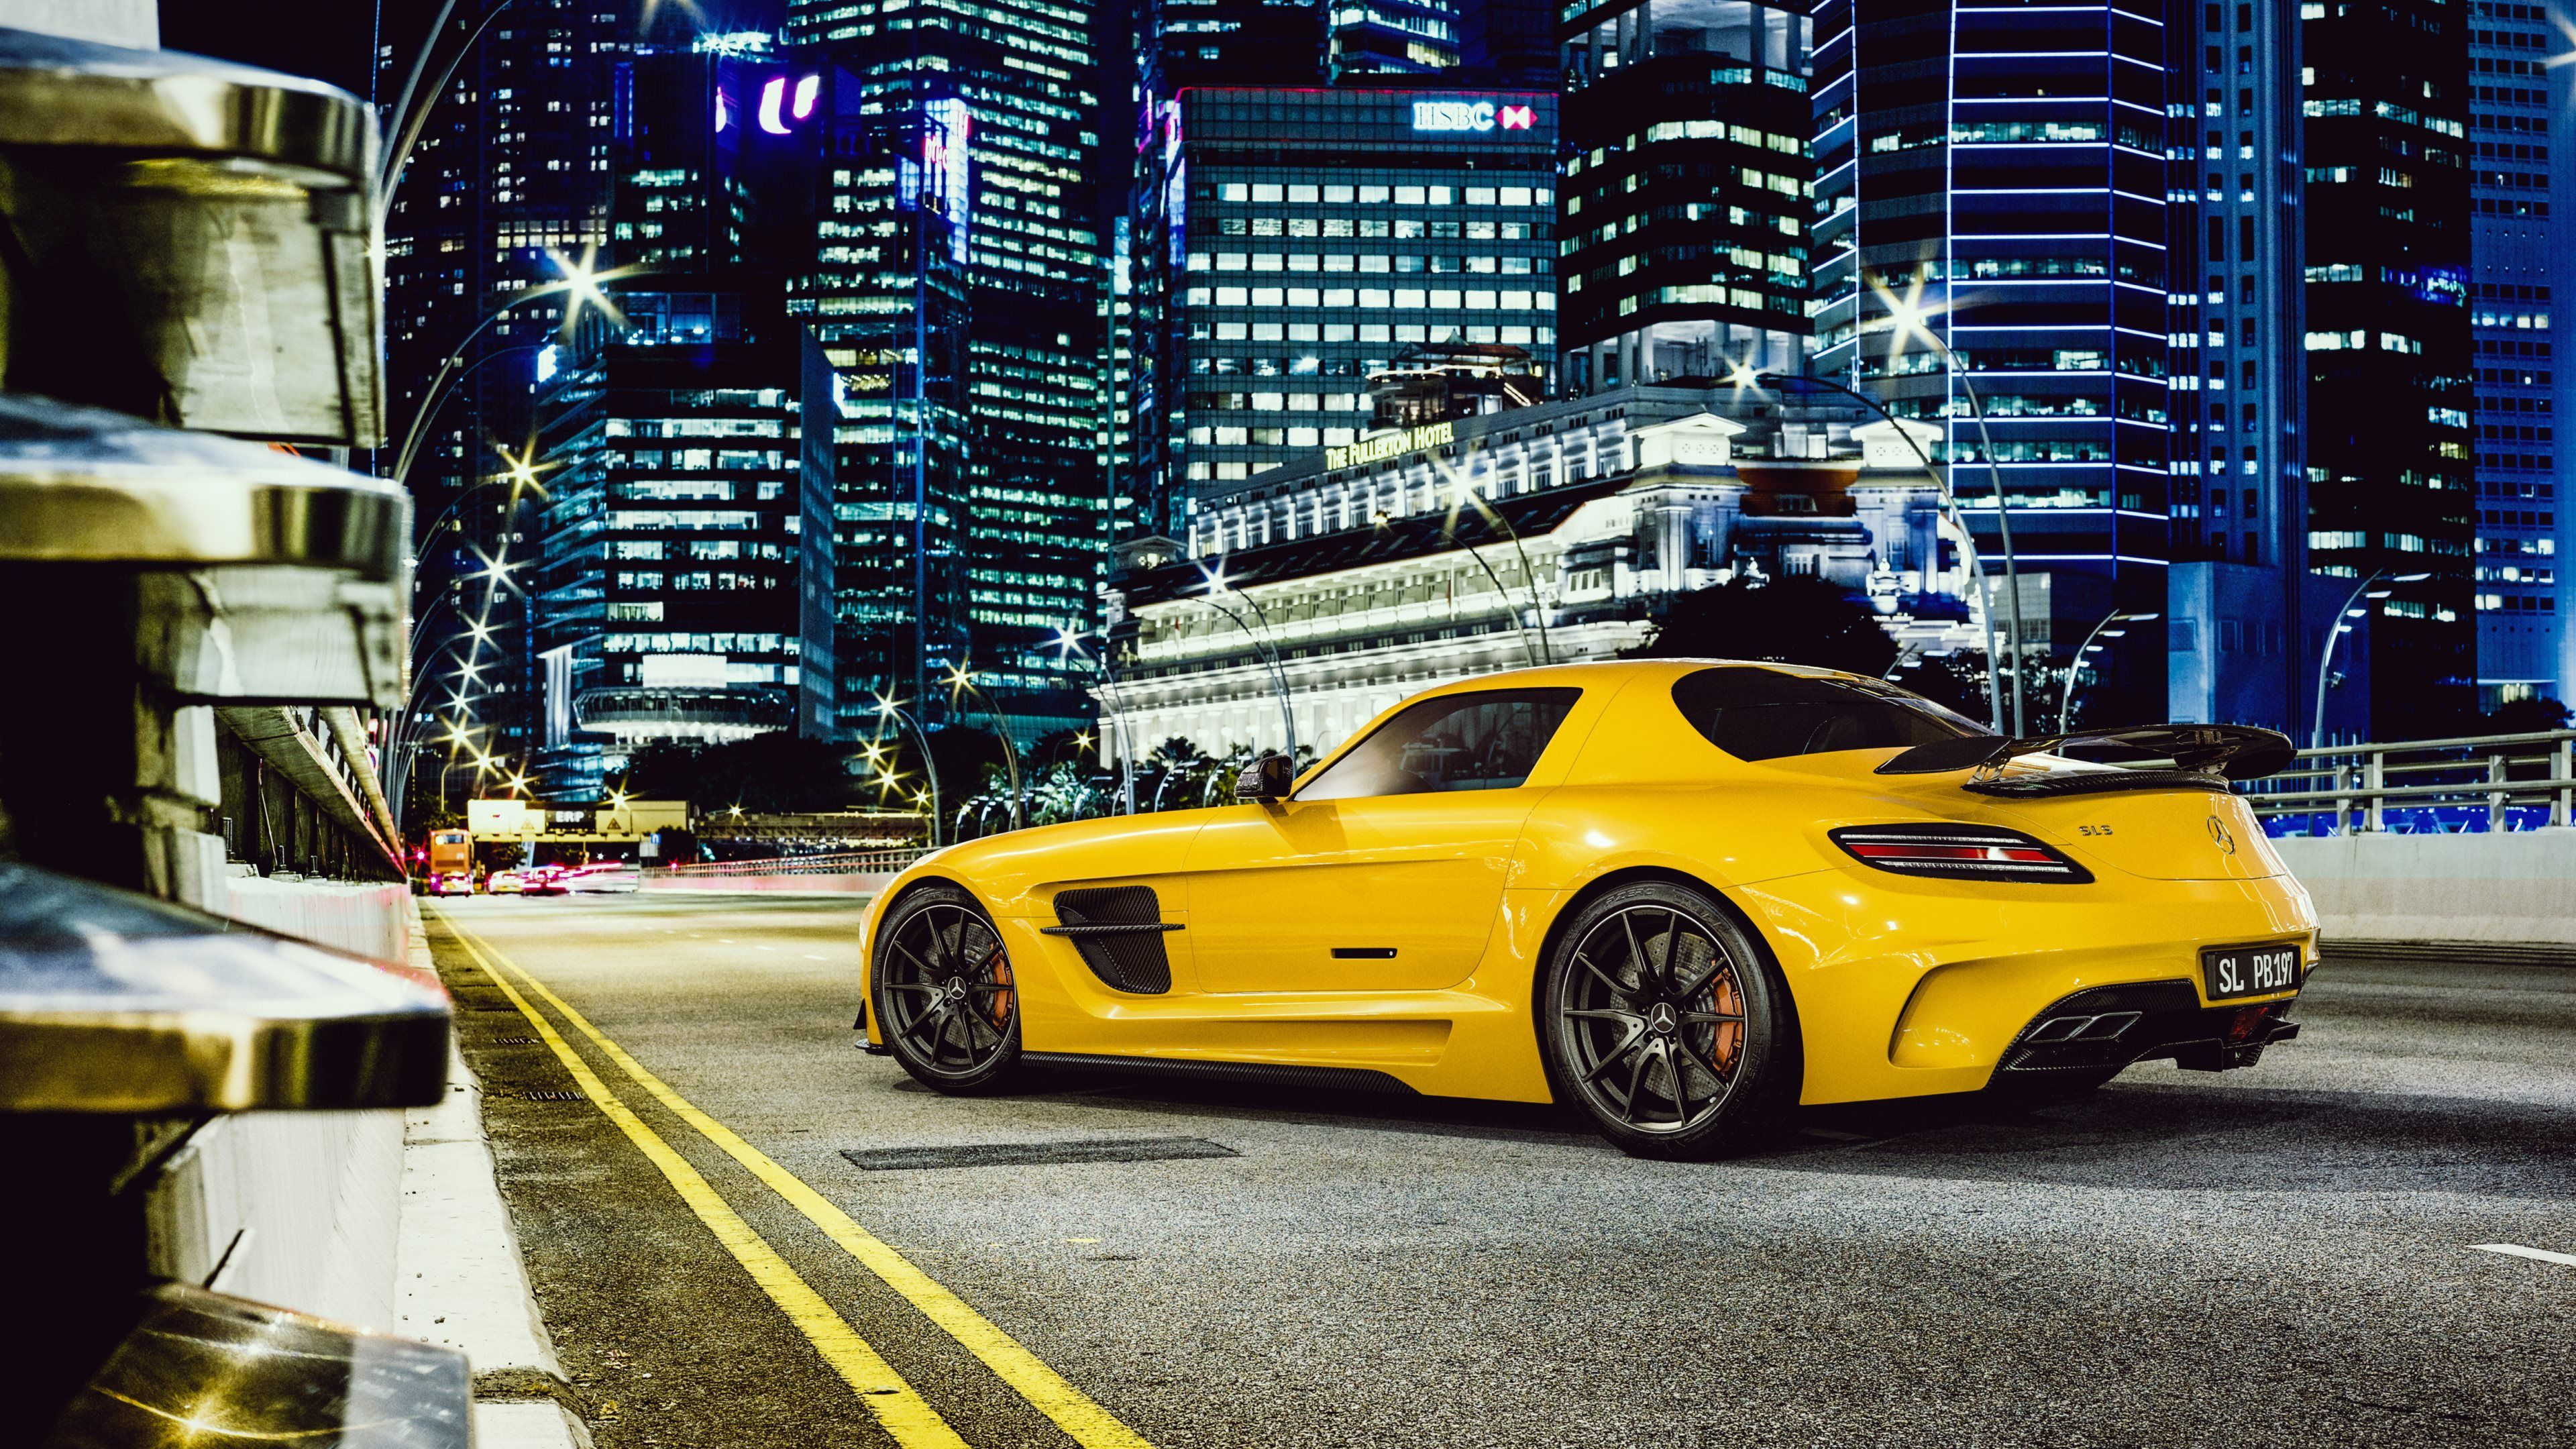 Mercedes Amg Collection See All Wallpapers Wallpapers Background Cars Mercedes Benz Sls Amg Mercedes Benz Sls Mercedes Benz